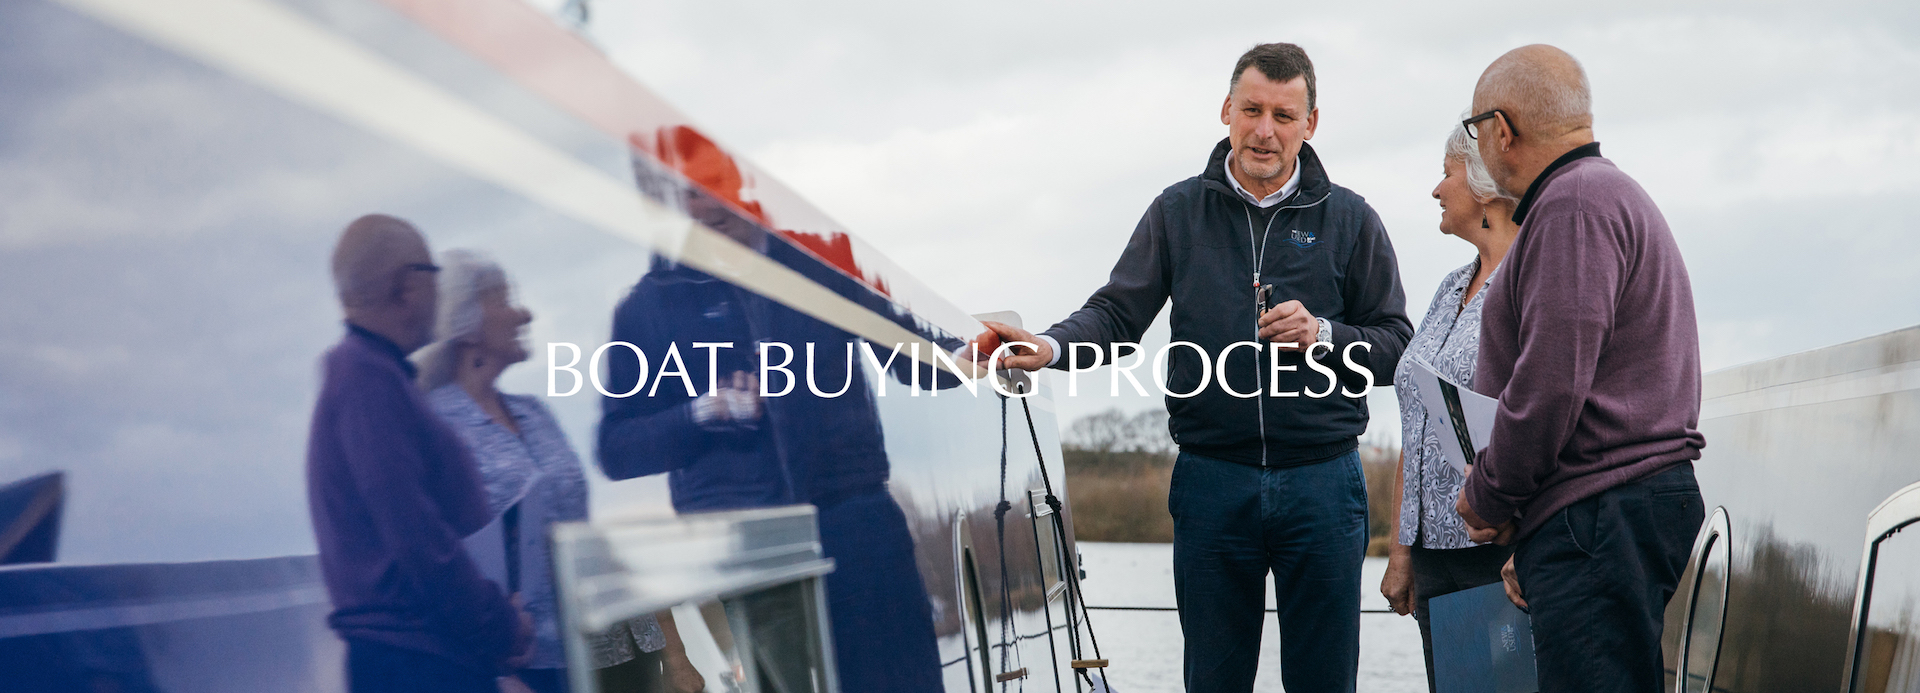 Boat Buying Process